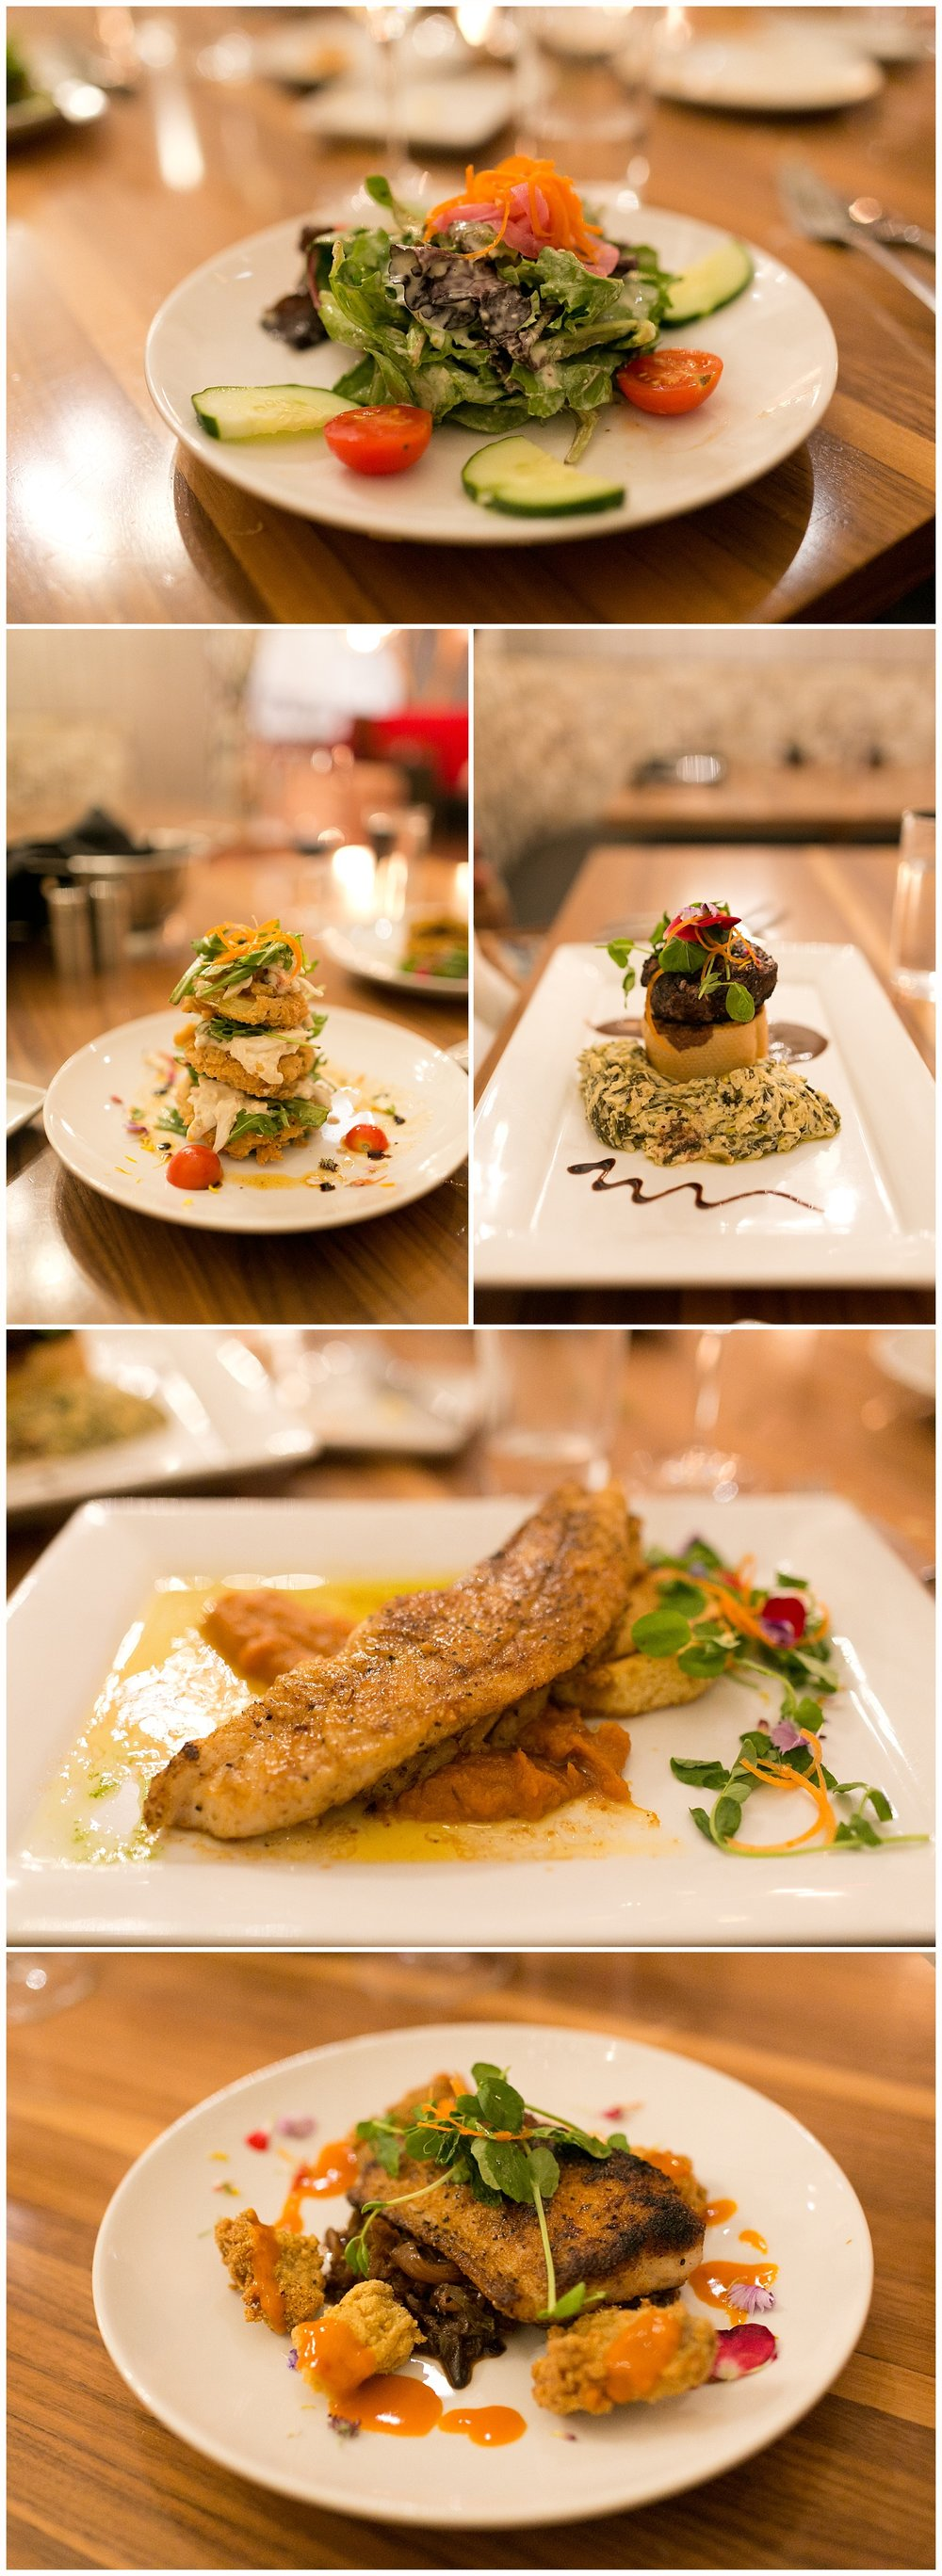 Biloxi food photography - Cora's restaurant at the White House Hotel